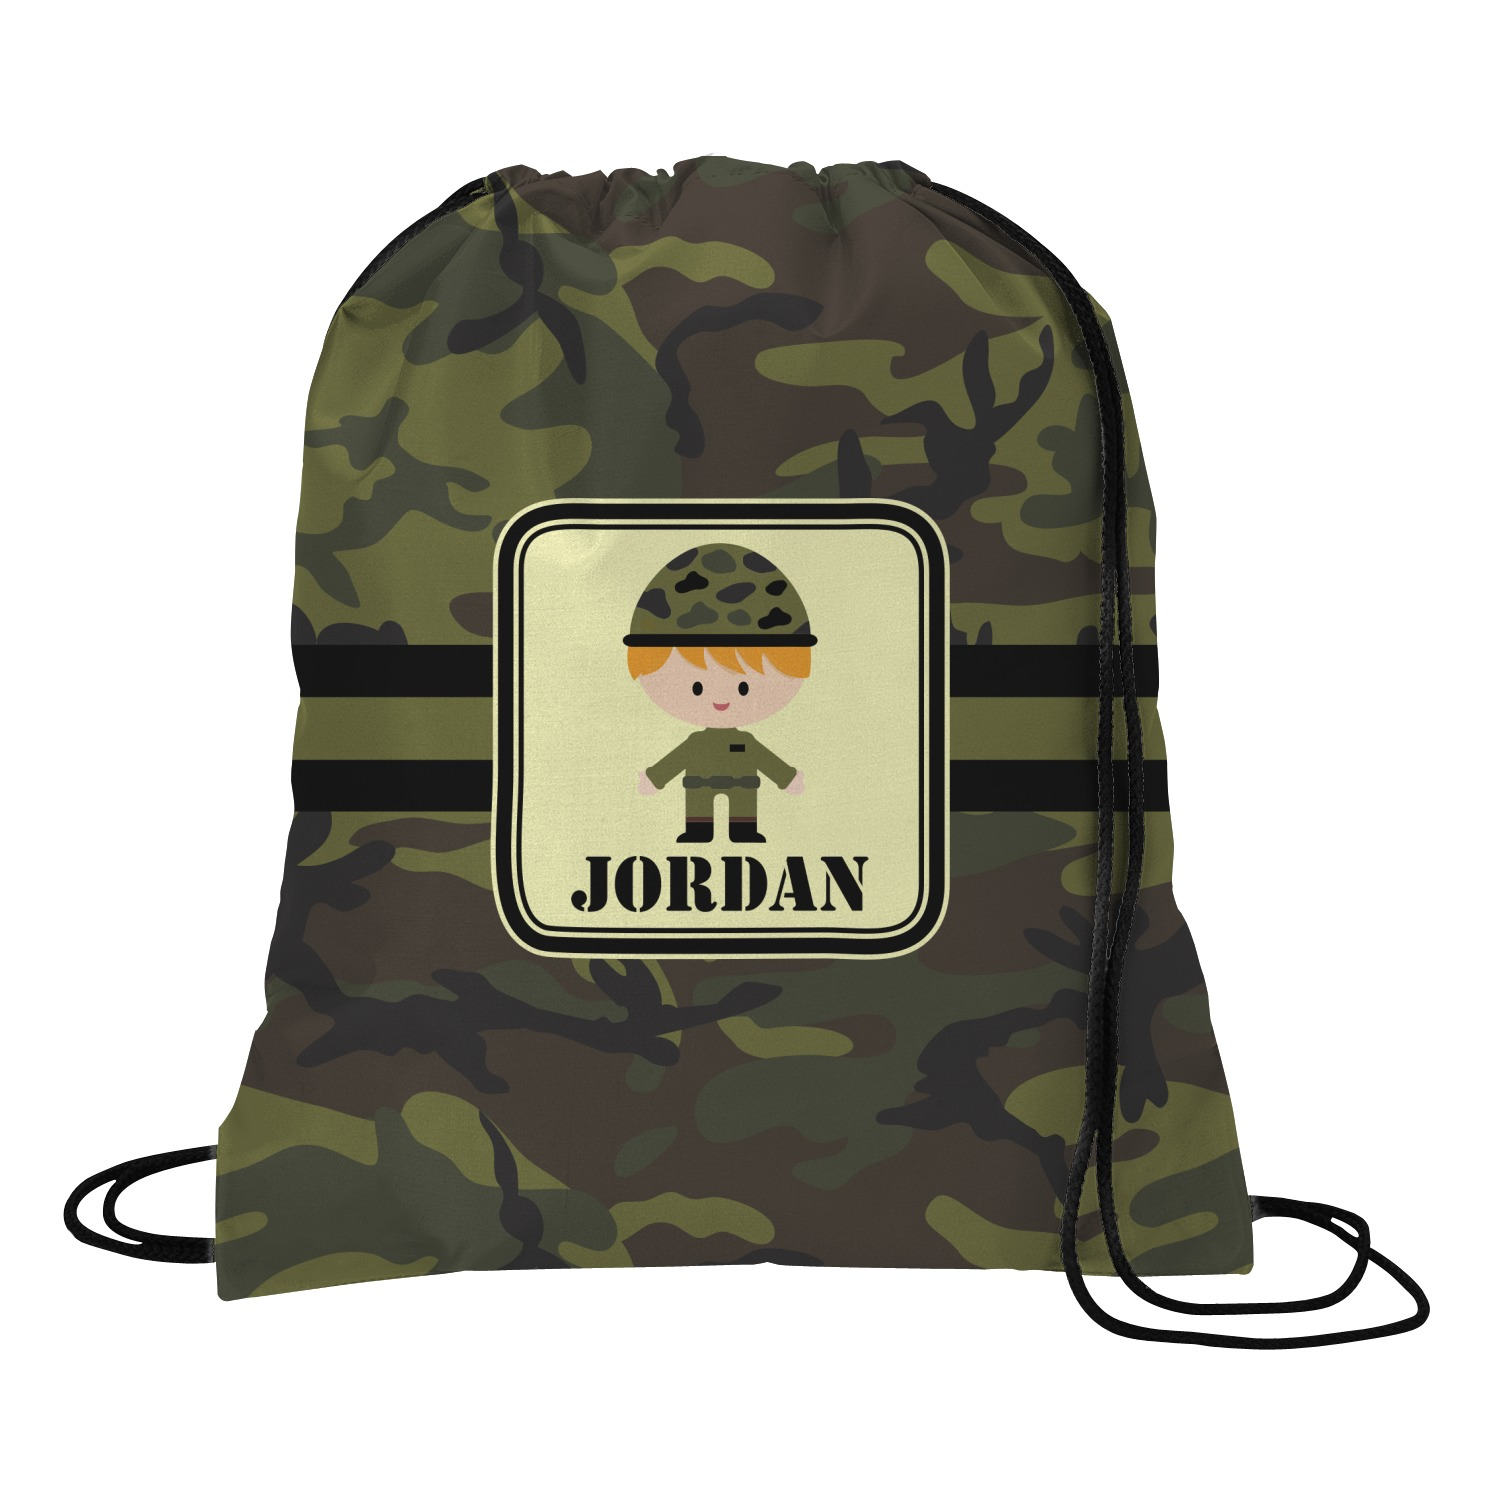 dc693fdd13e0 Green Camo Drawstring Backpack (Personalized) - YouCustomizeIt